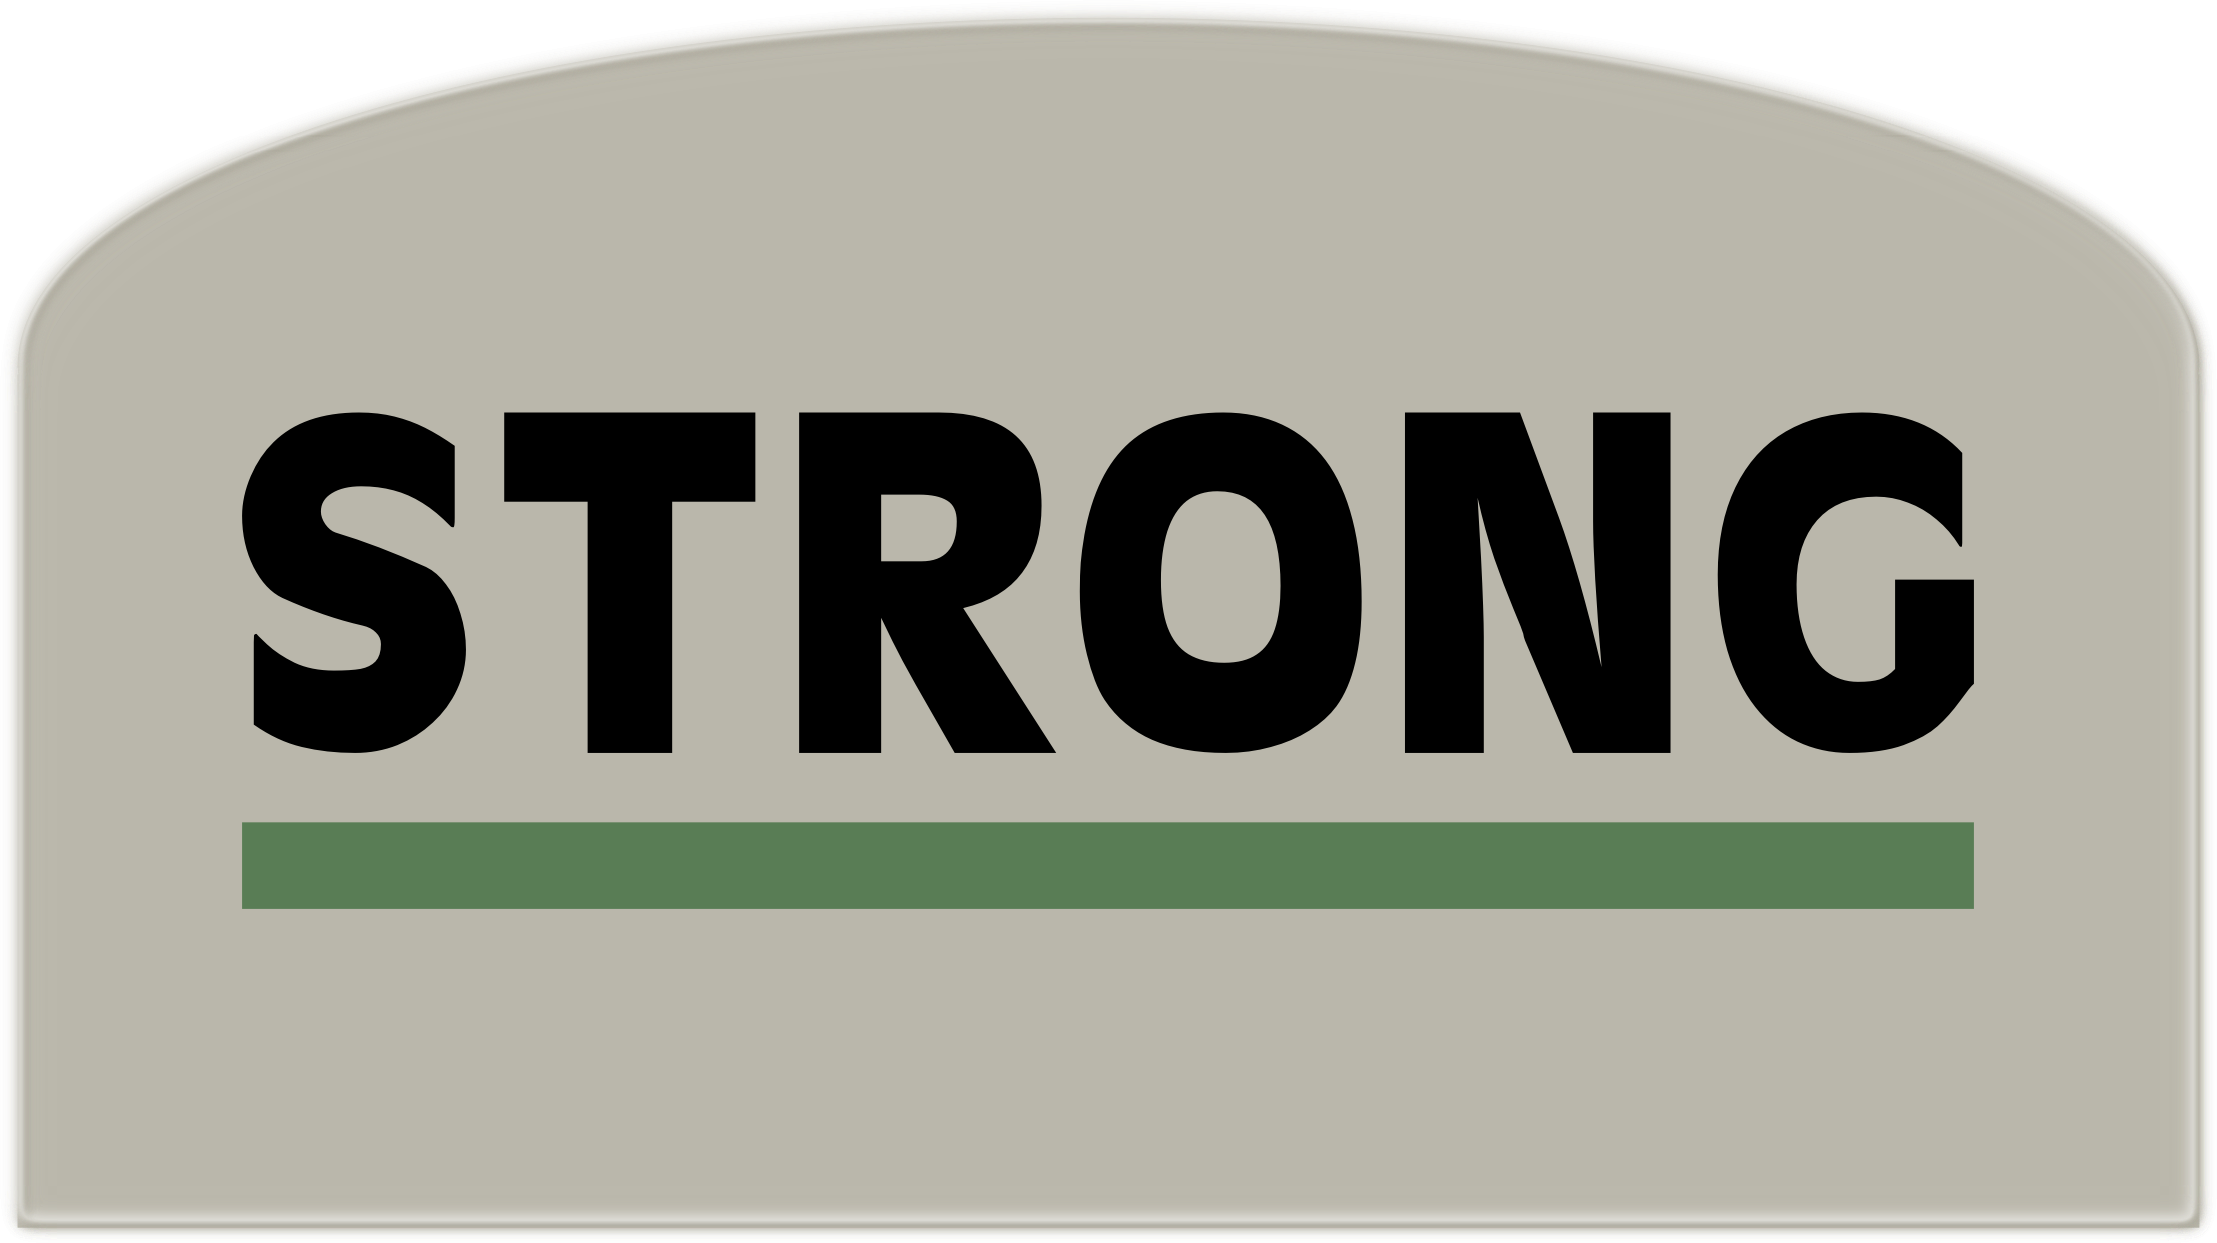 'Strong' sign by Arvin61r58